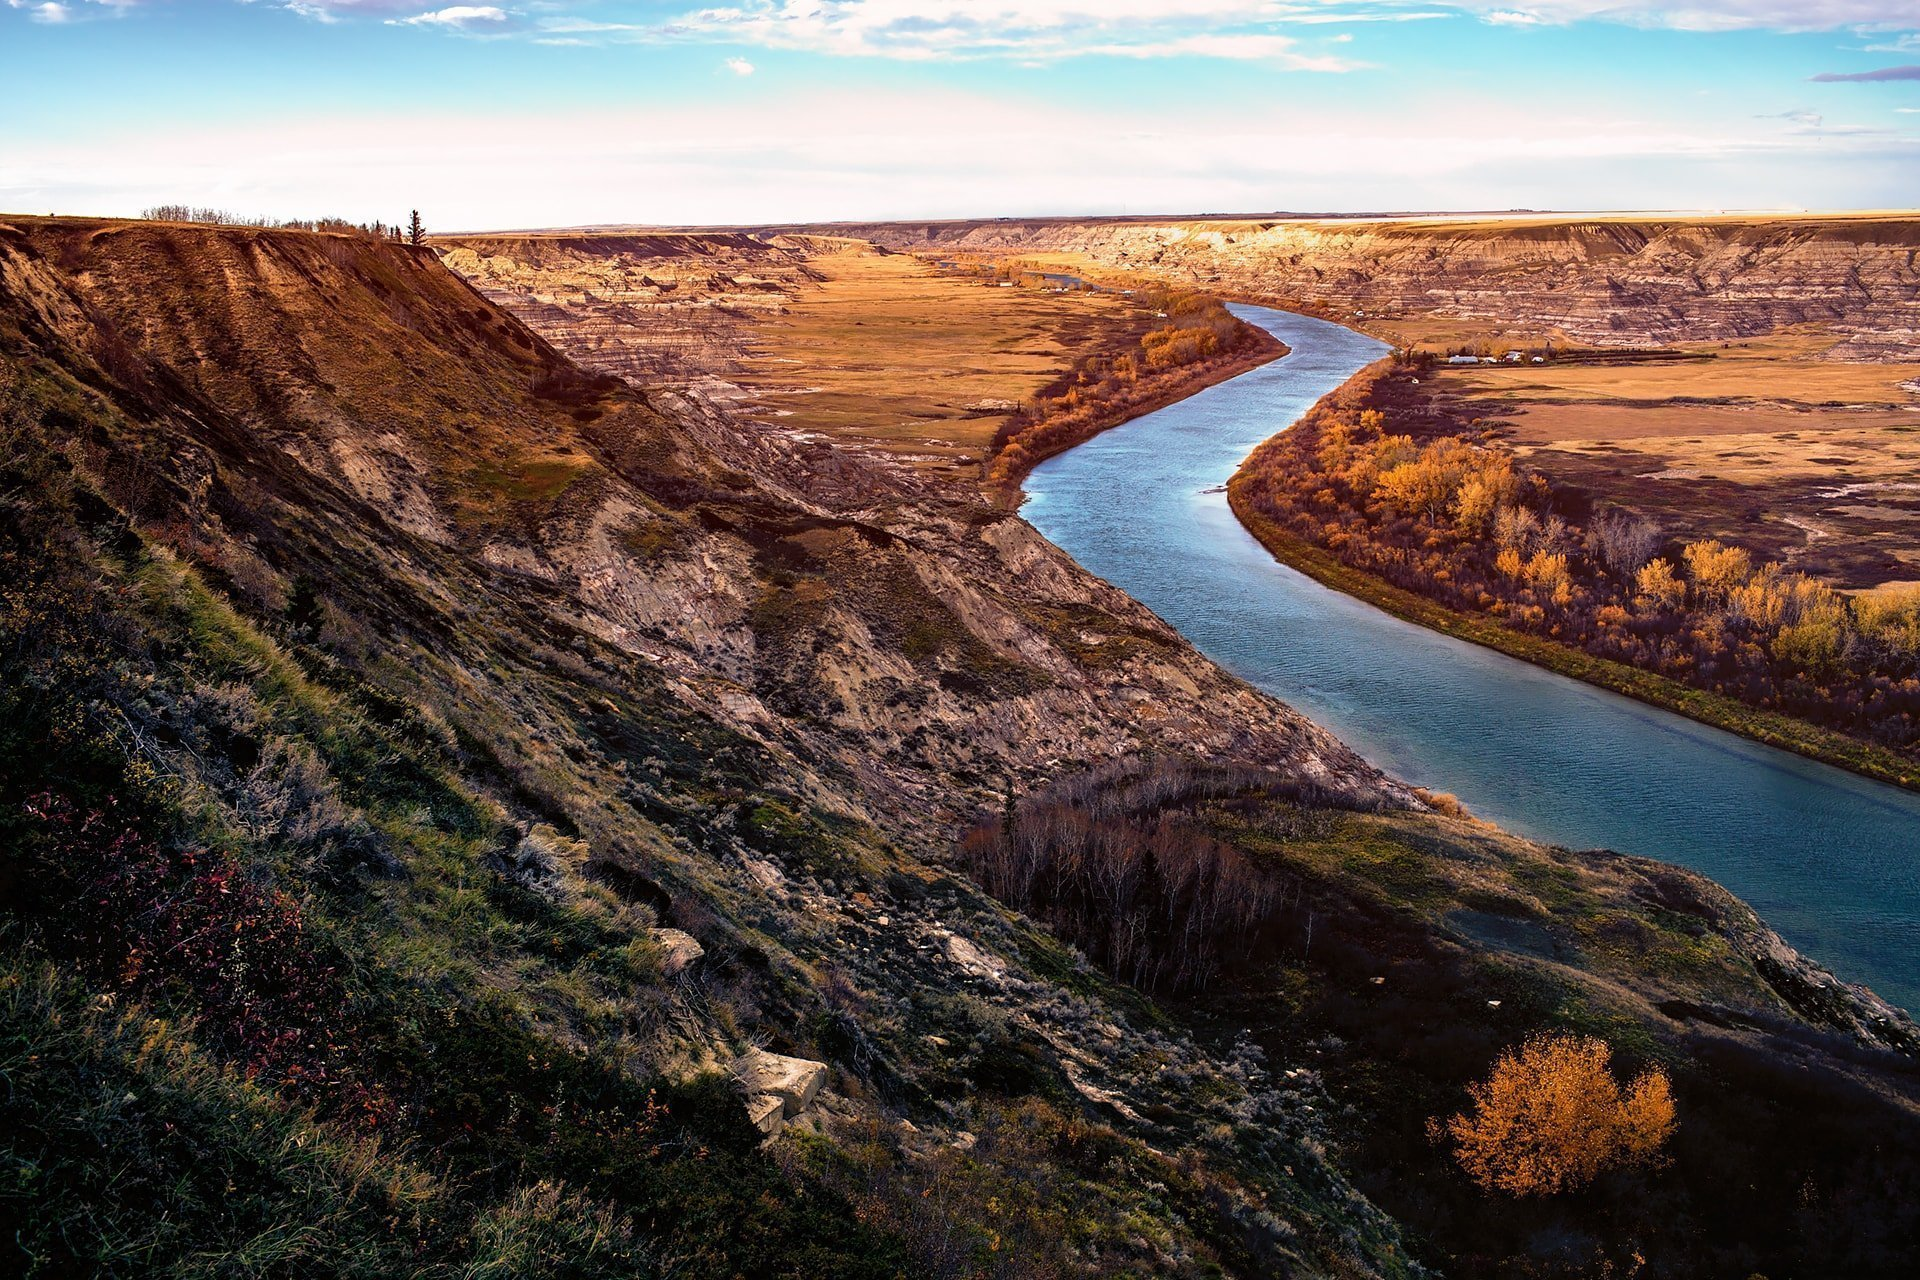 Orkney Viewpoint at Drumheller a short drive from Horseshoe Canyon